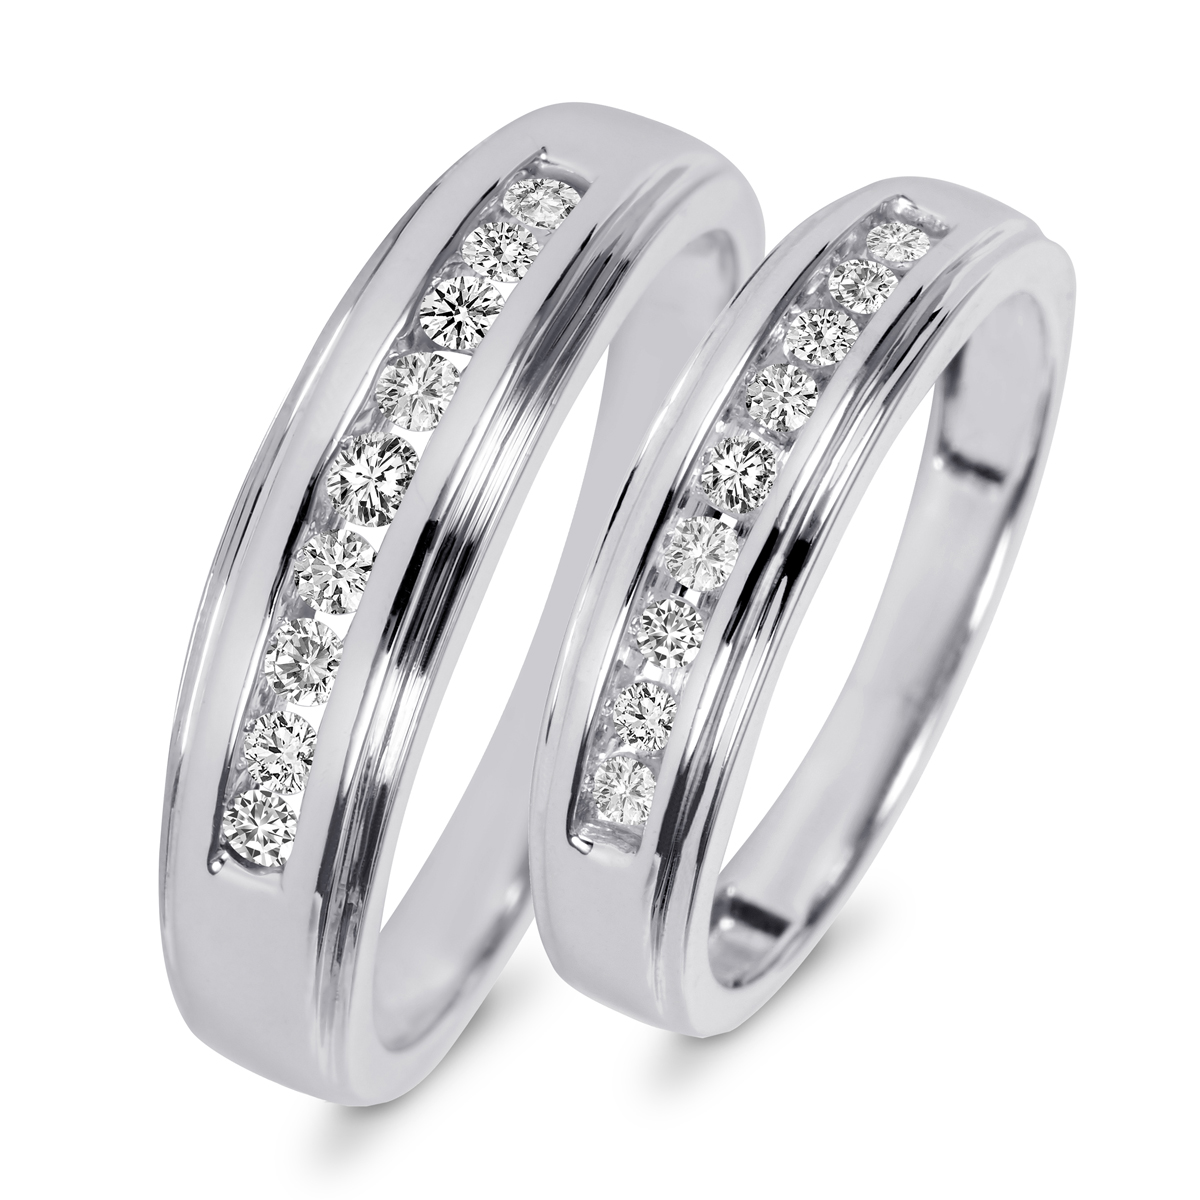 wedding band sets 3/8 carat t.w. diamond his and hers wedding band set 10k white gold | my hlcjfyq